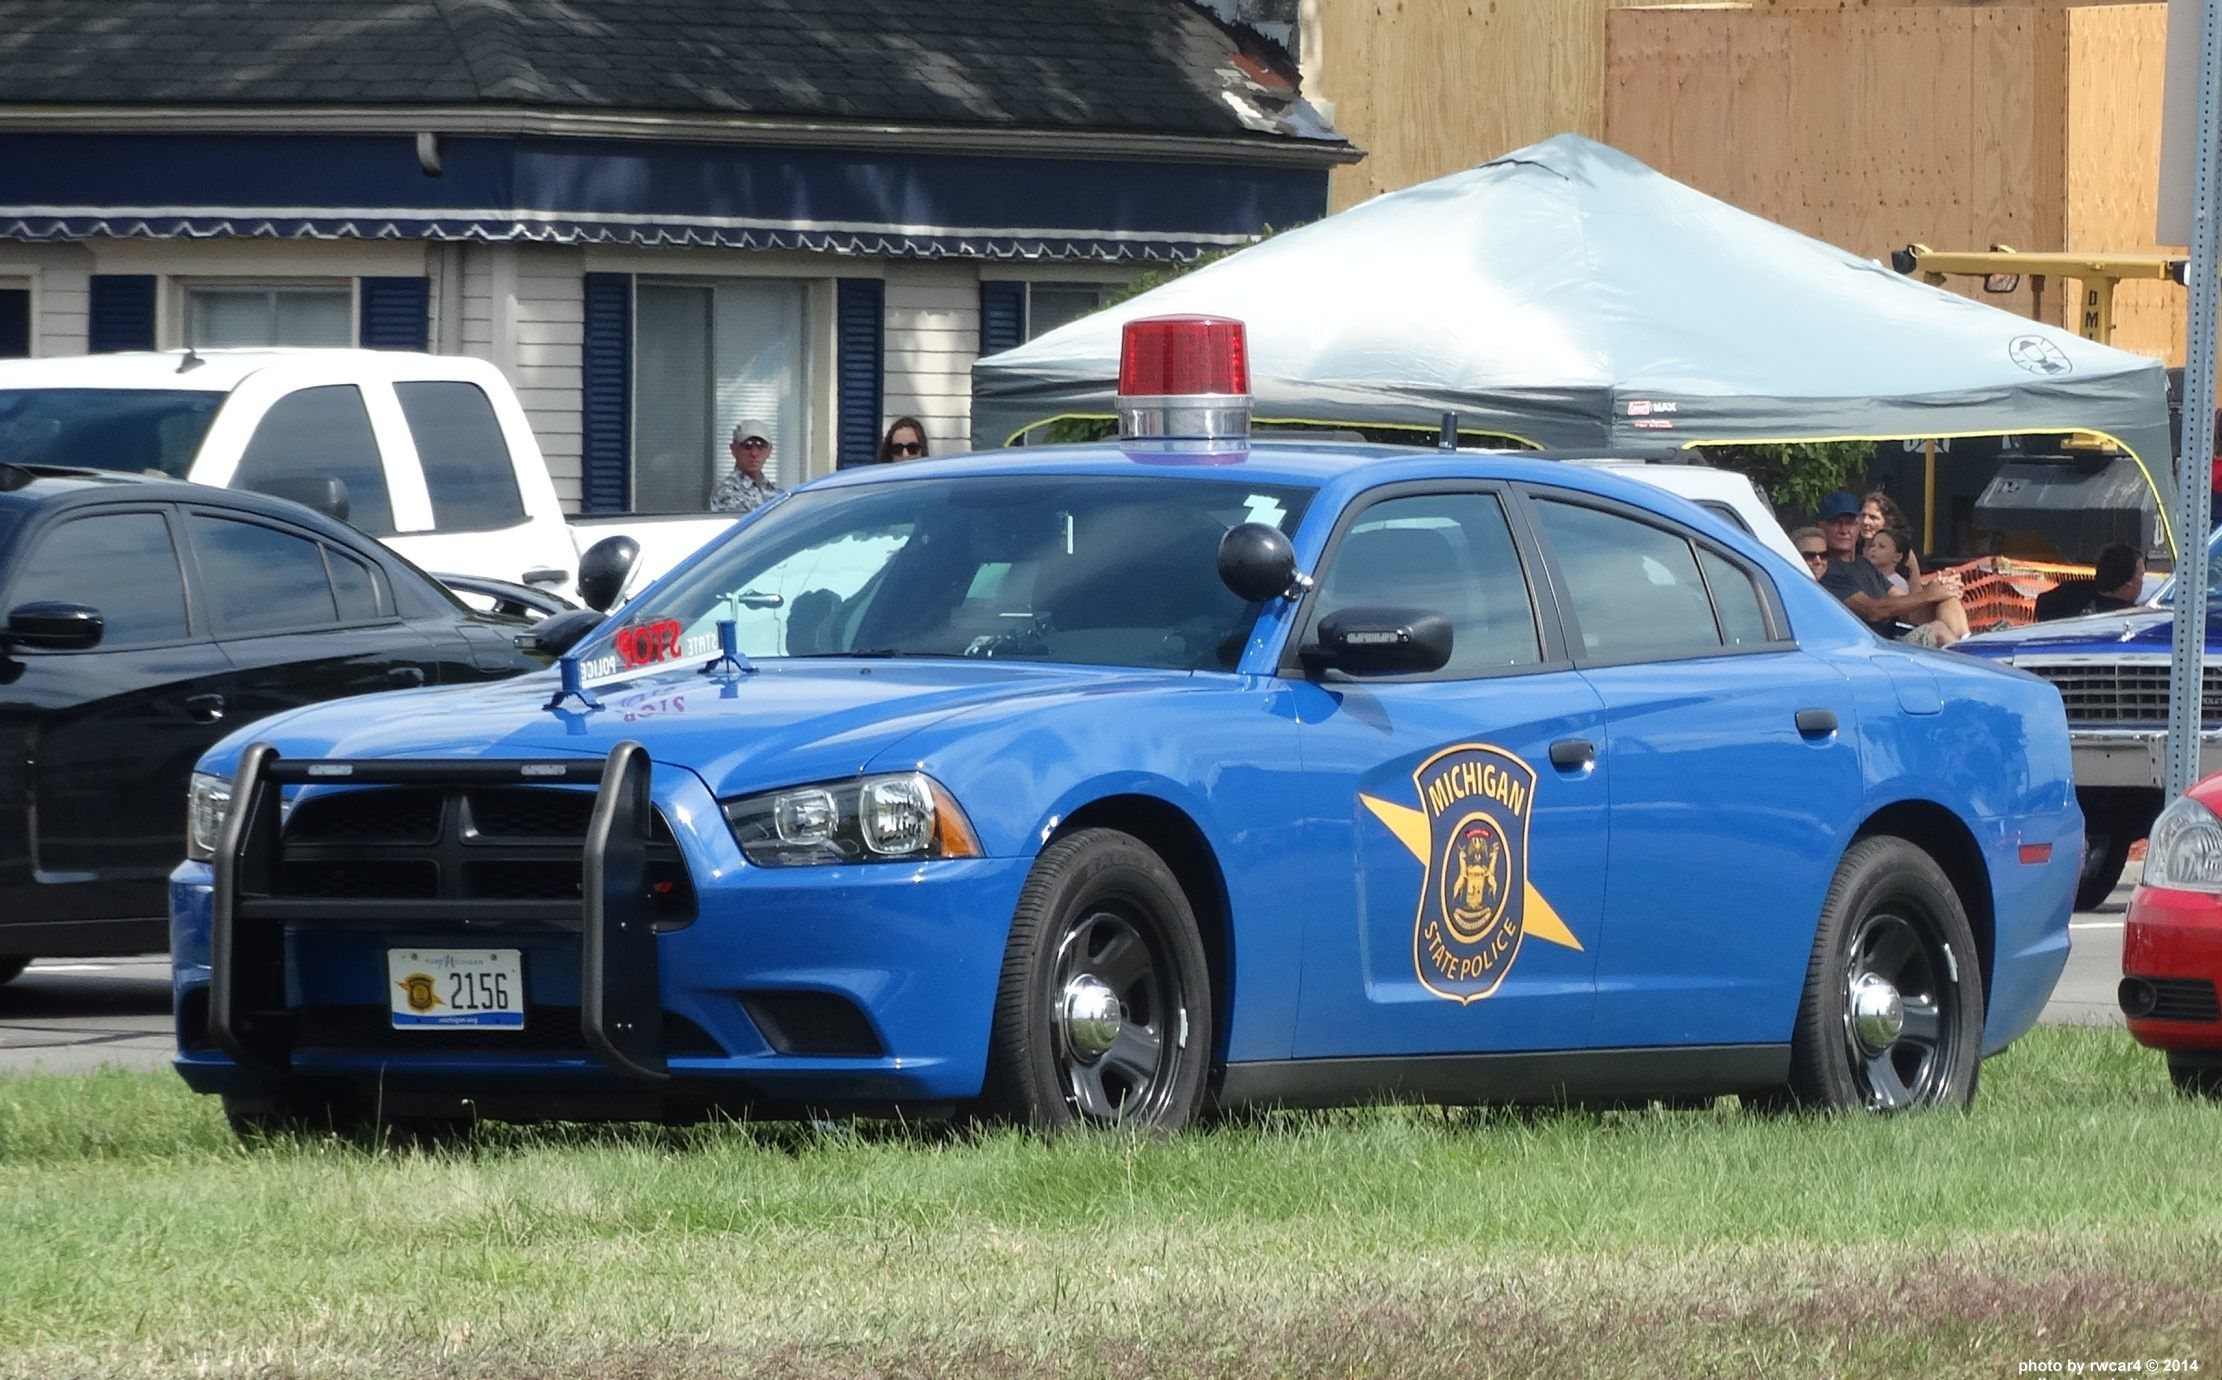 Michigan State Police 2012 Dodge Charger State Police Police Cars 2012 Dodge Charger